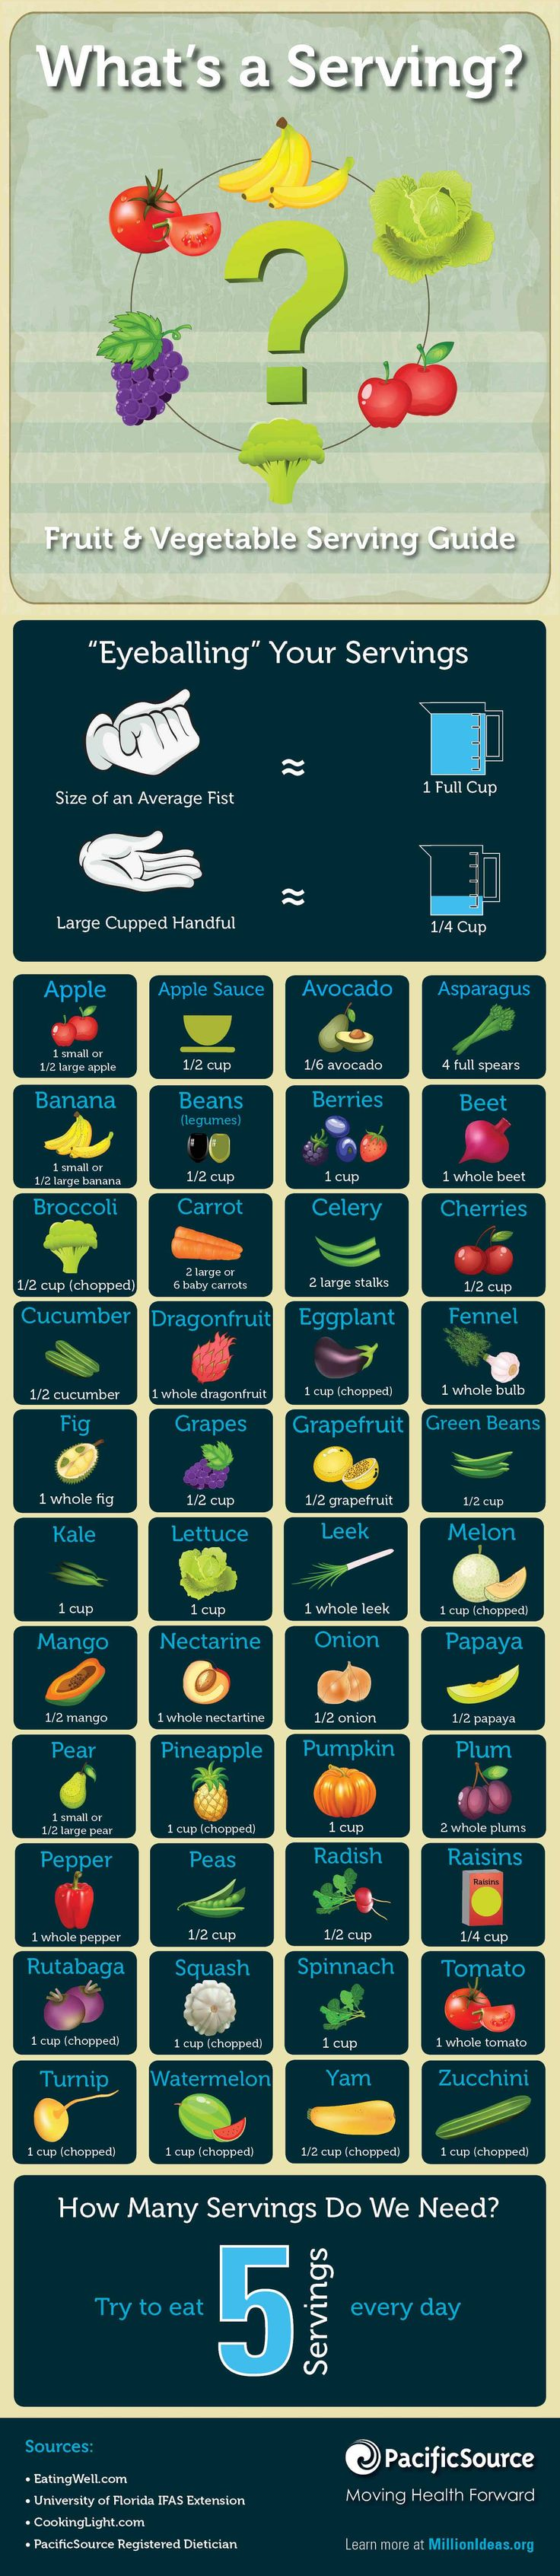 What's a Serving? The Fruit and Vegetable Serving Guide